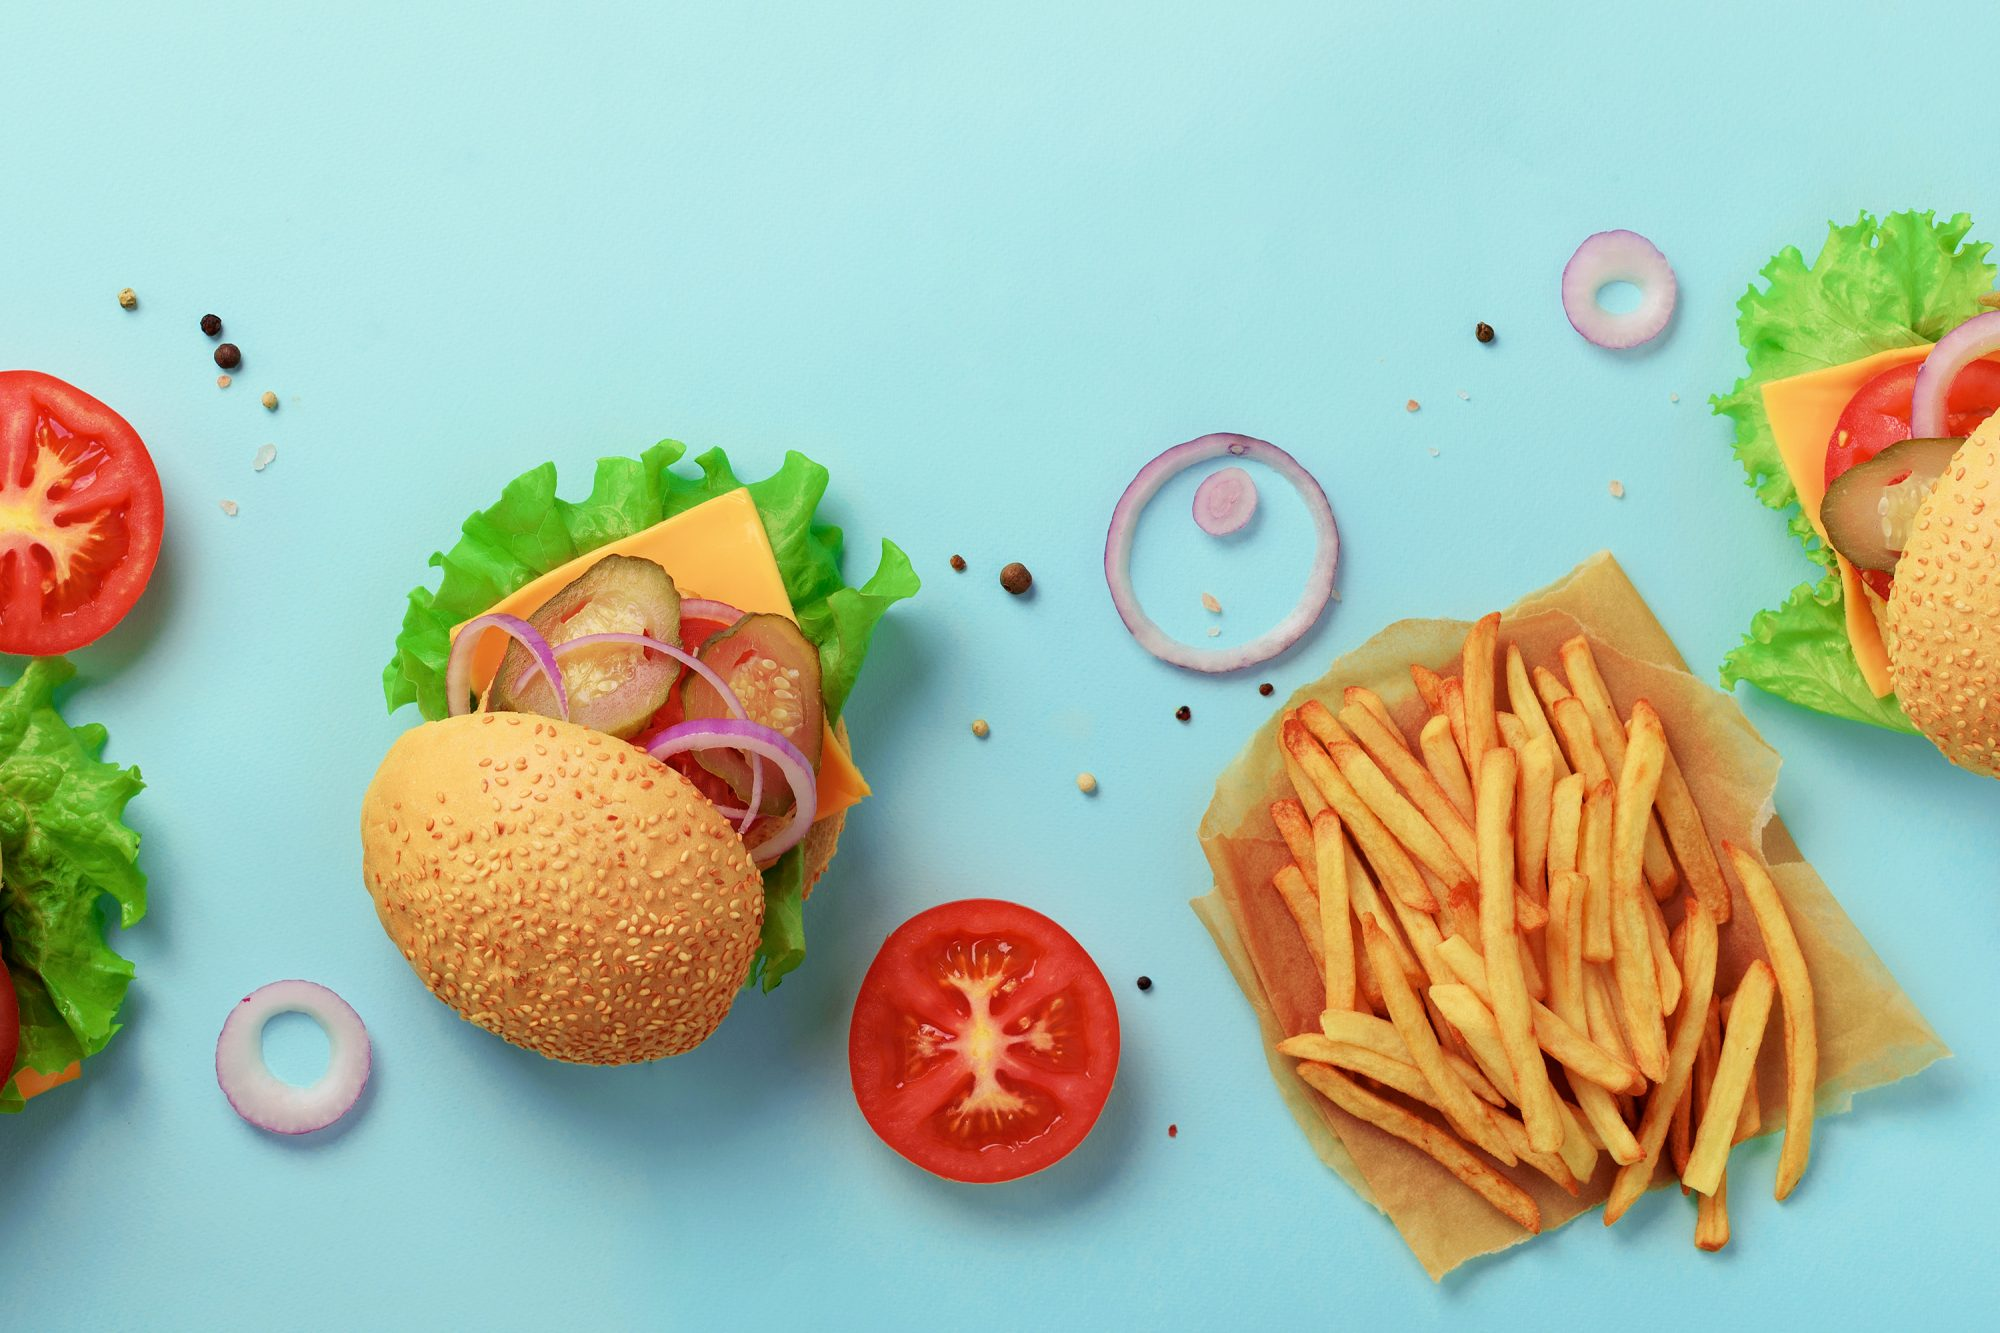 Healthy Fast Food Orders According to RDs: image of cheeseburger, fries, tomato, lettuce, onion